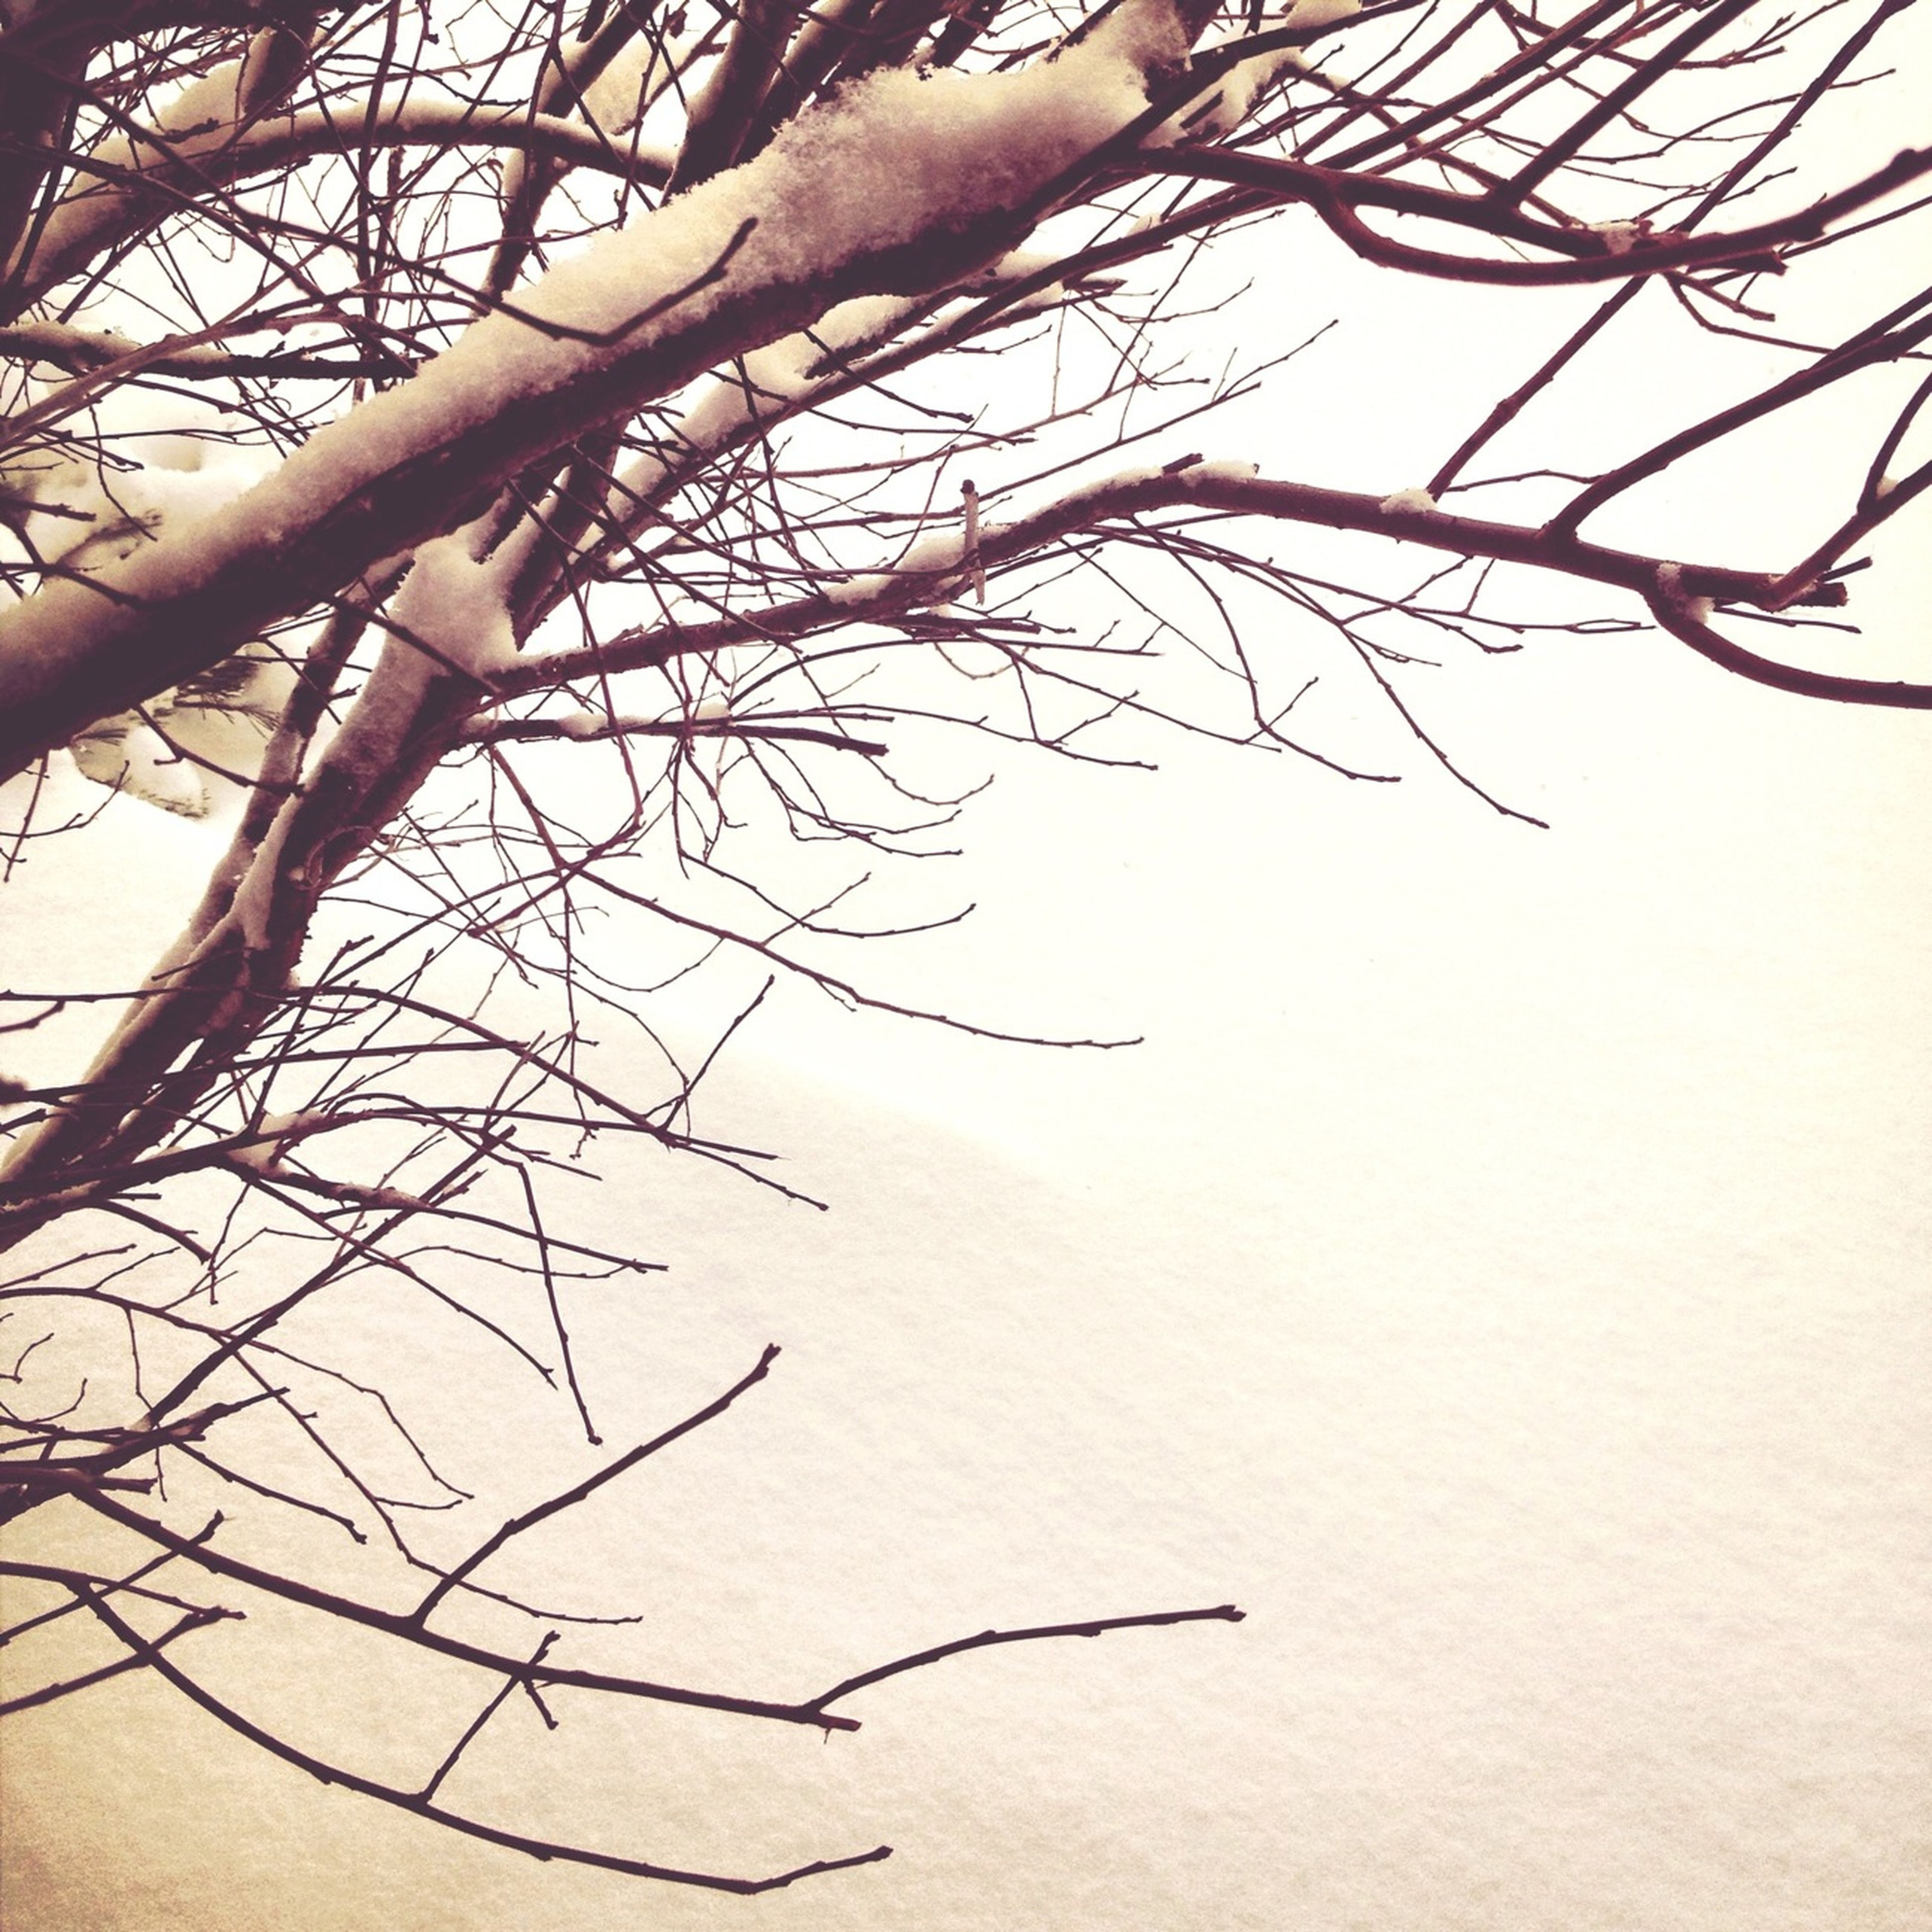 bare tree, branch, tree, tranquility, nature, clear sky, tree trunk, tranquil scene, beauty in nature, scenics, sky, dead plant, outdoors, no people, low angle view, day, growth, twig, non-urban scene, single tree